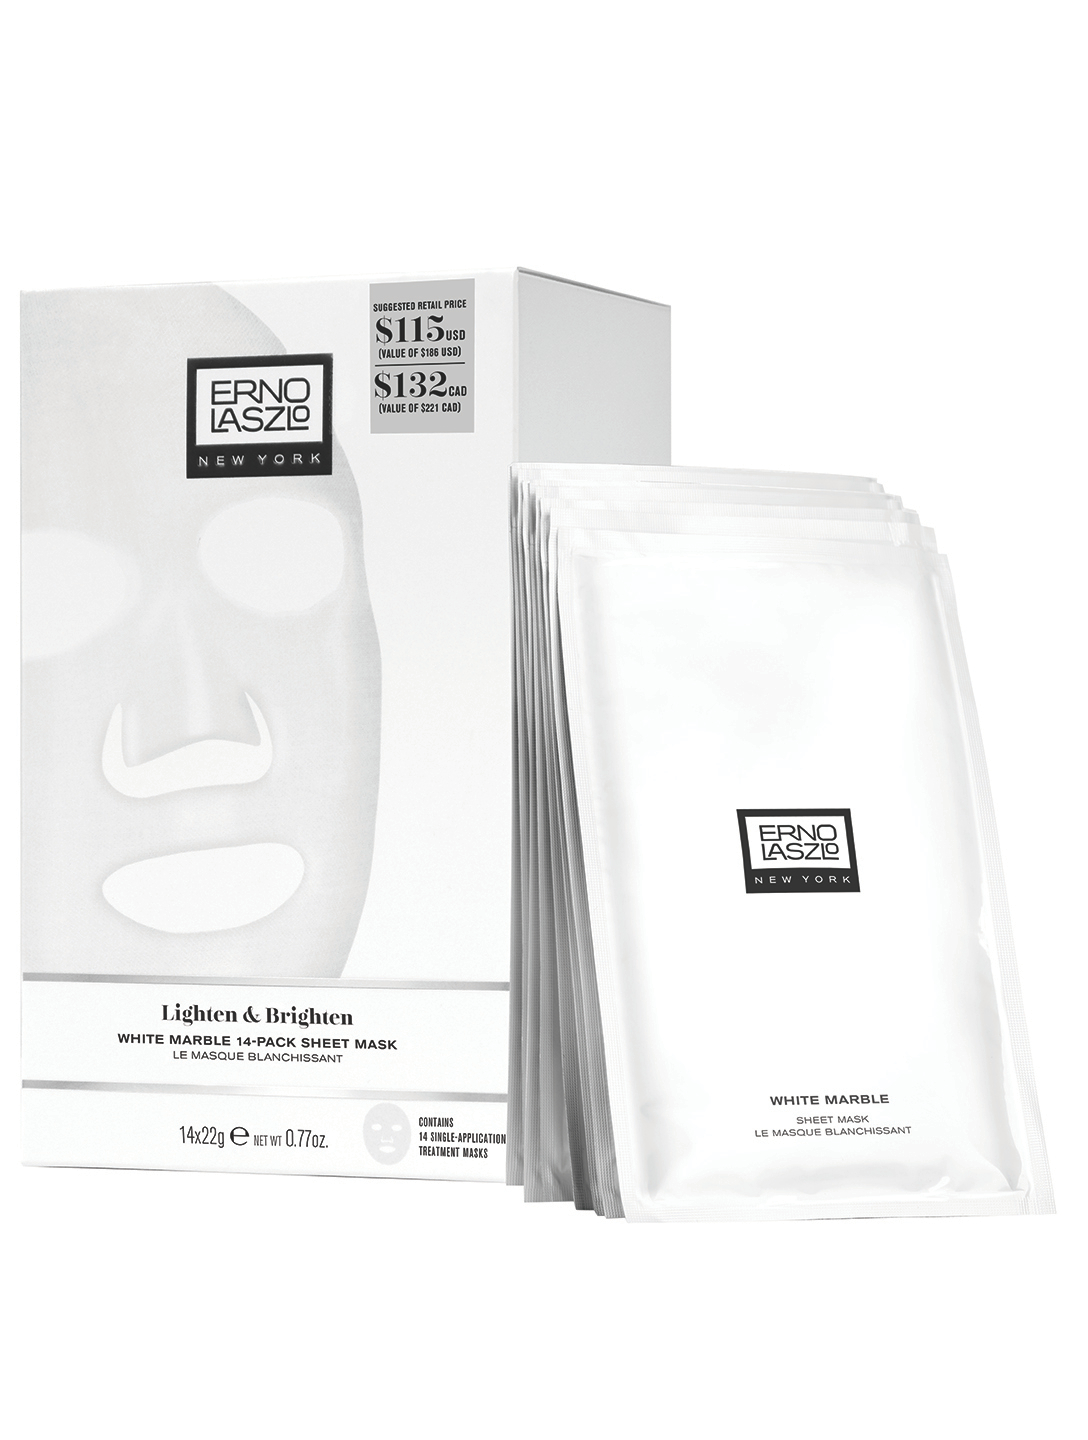 ERNO LASZLO White Marble Sheet Mask 14-Pack Set Beauty